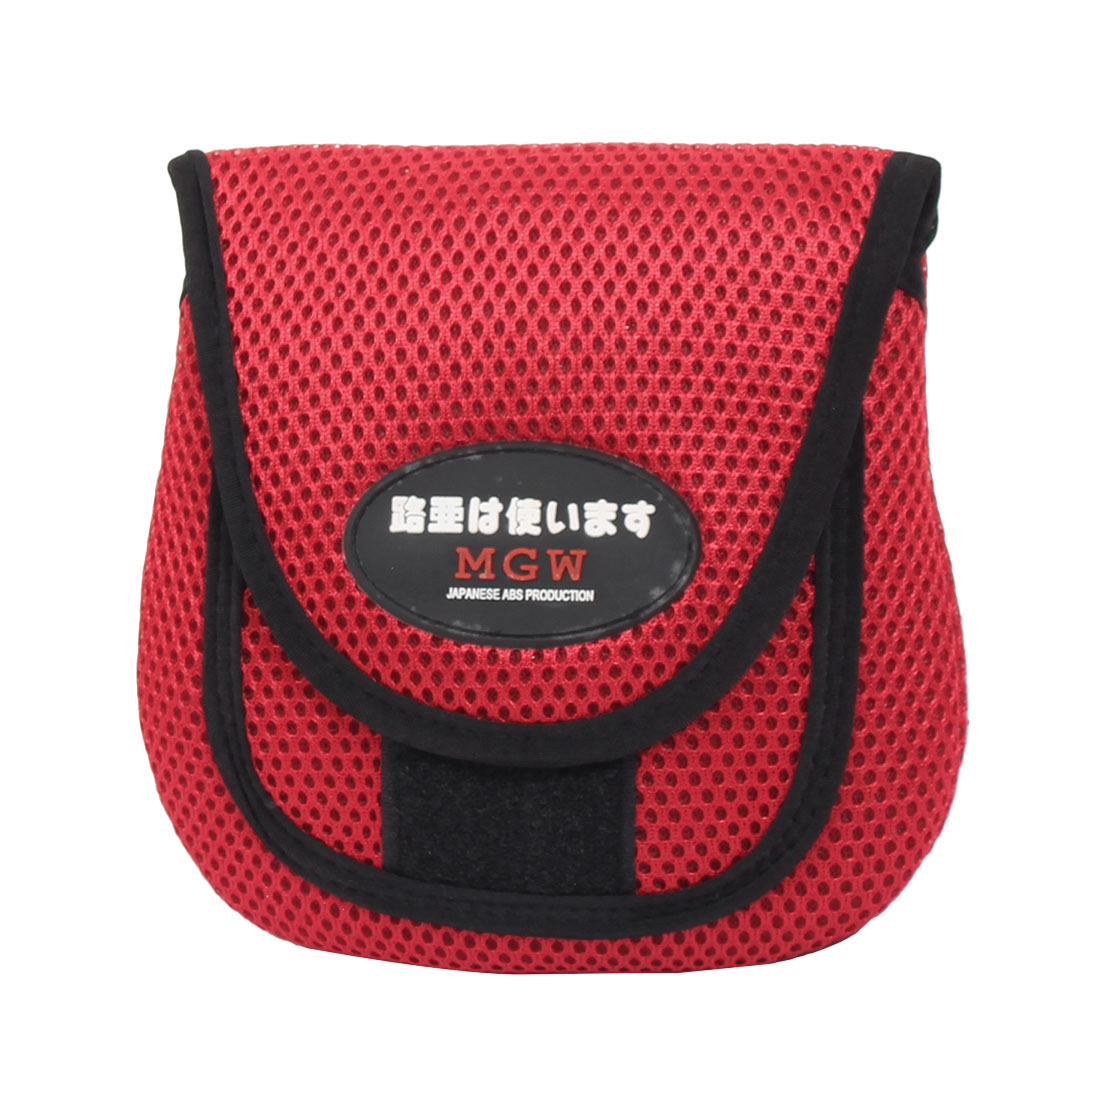 Hook Loop Closure Mesh Fishing Reel Cover Pouch Tackle Bag Protector Holder Red